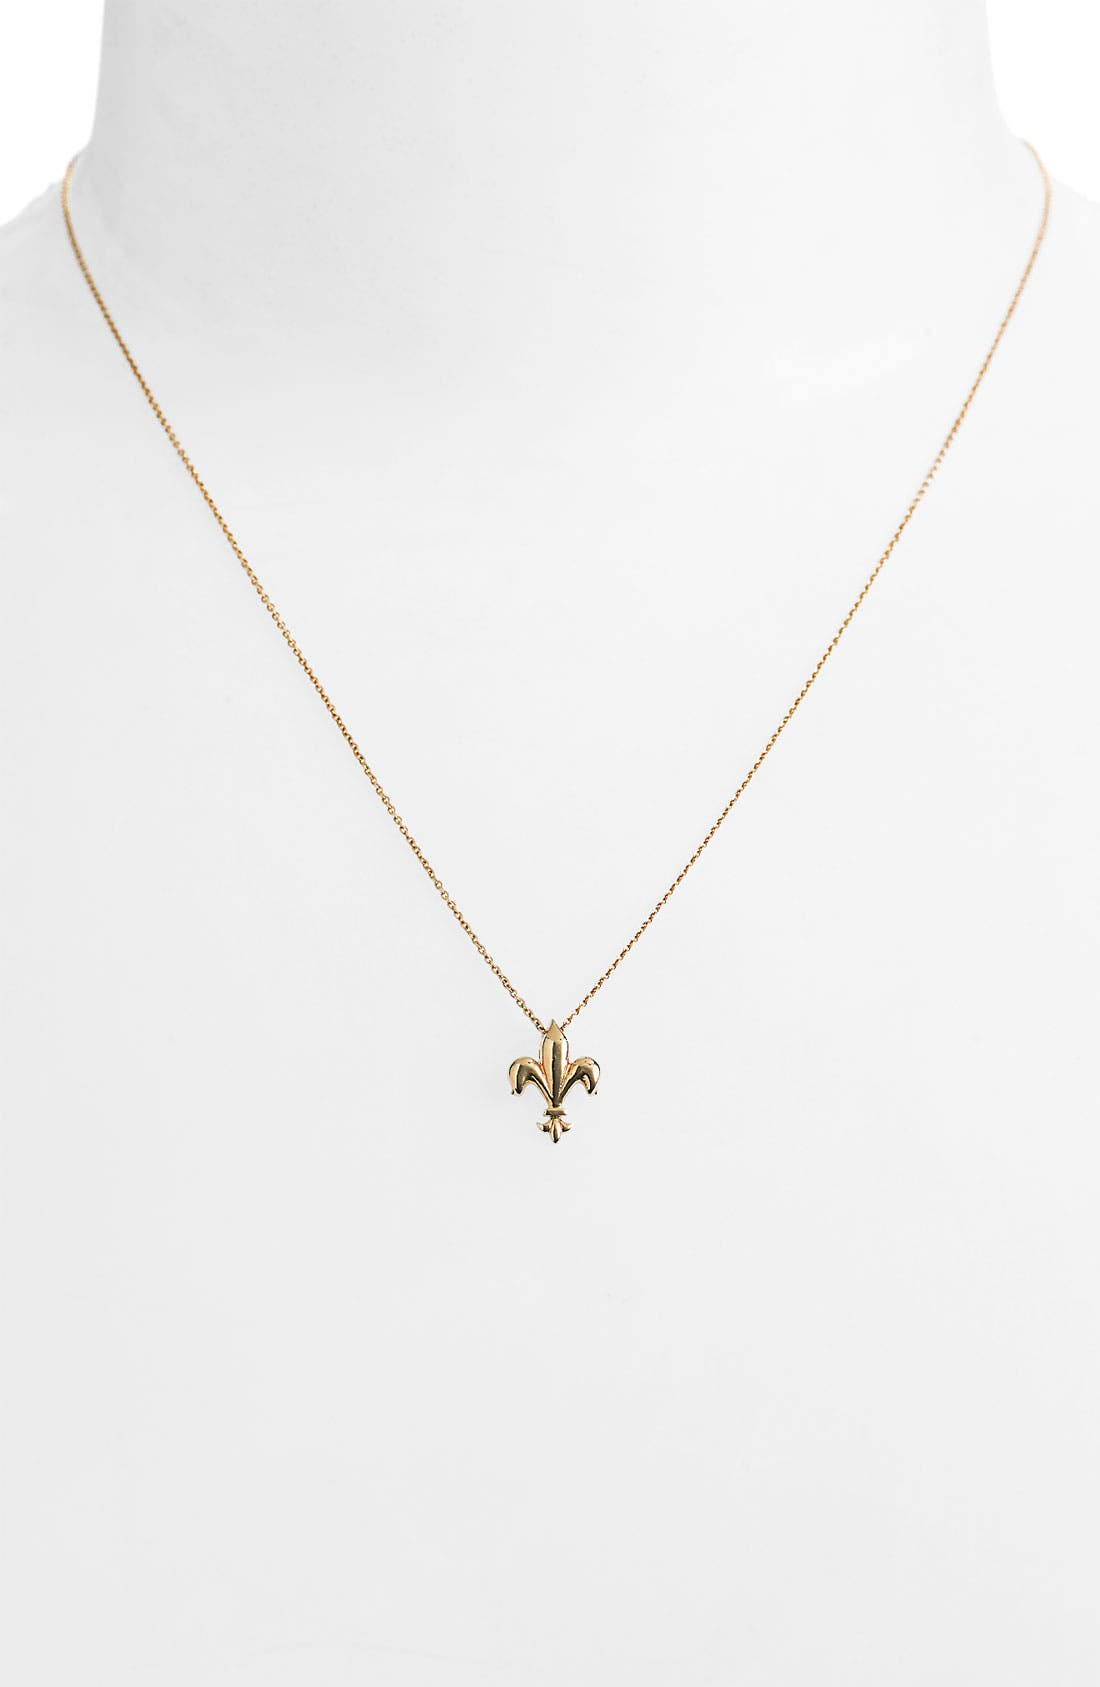 Alternate Image 1 Selected - Roberto Coin 'Tiny Treasures' Fleur de Lis Necklace